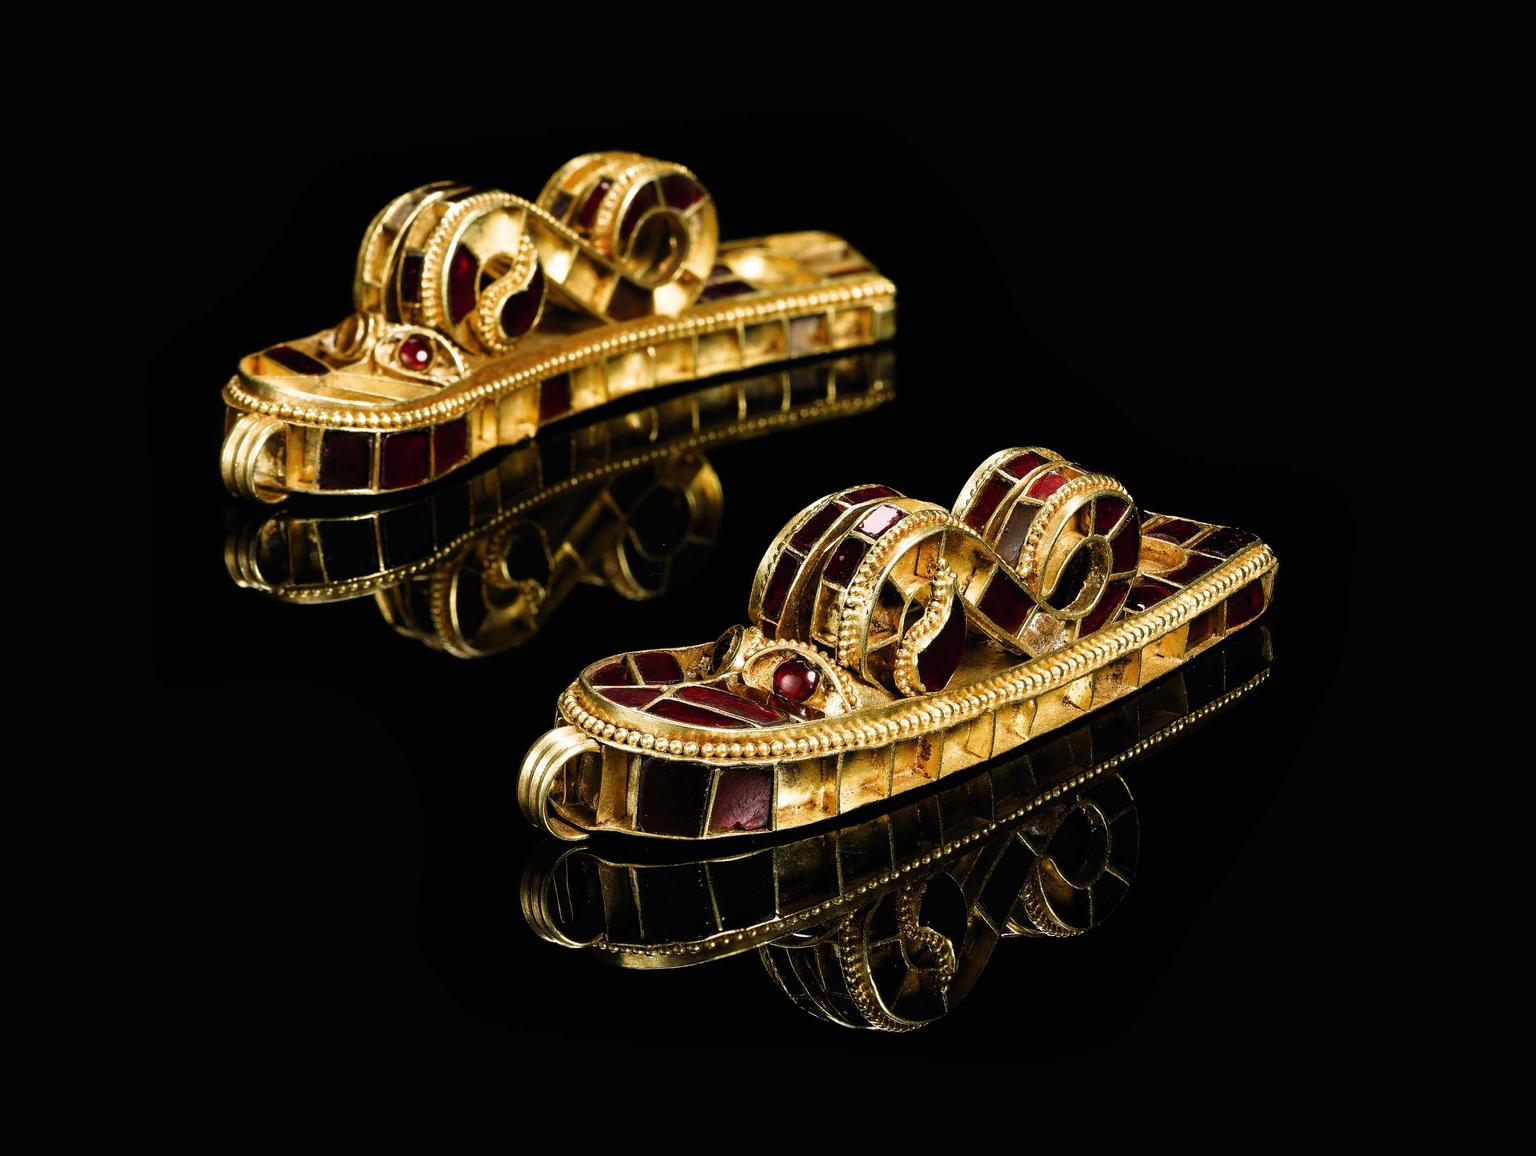 Particularly impressive are the garnet-set cloisonné dragon terminals at each end of the woven gold strap. The design is typical of the Hunnic period, when craftsmen were easily able to access high quality pre-cut garnet stones.